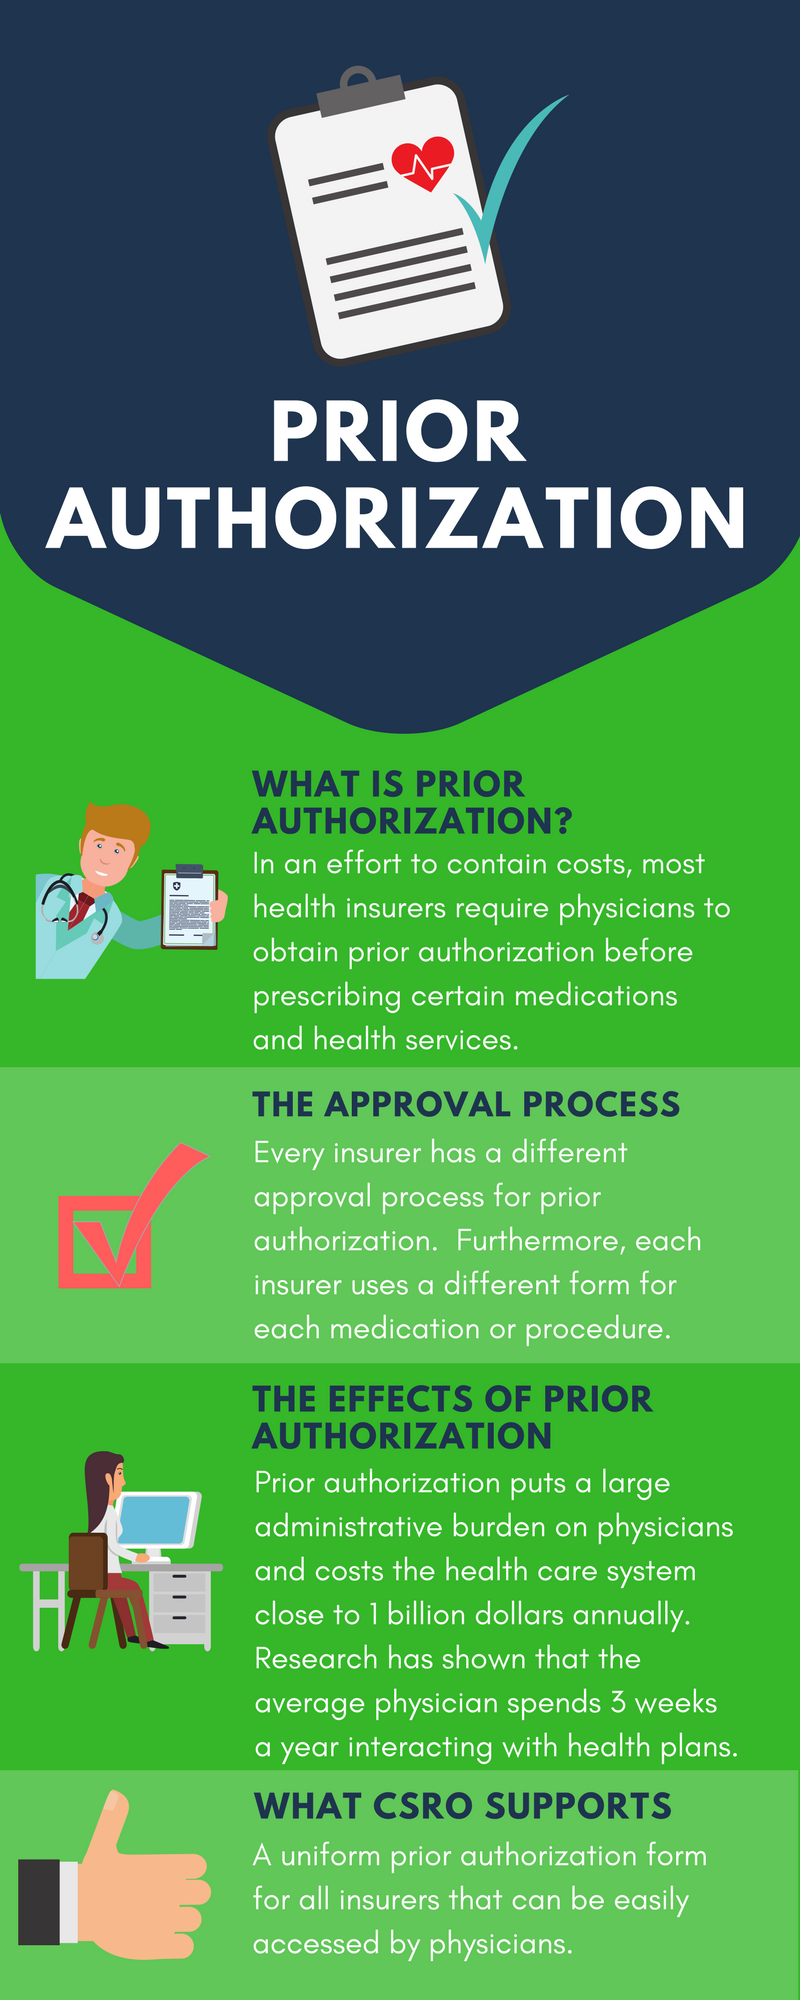 Uniform Prior Authorization